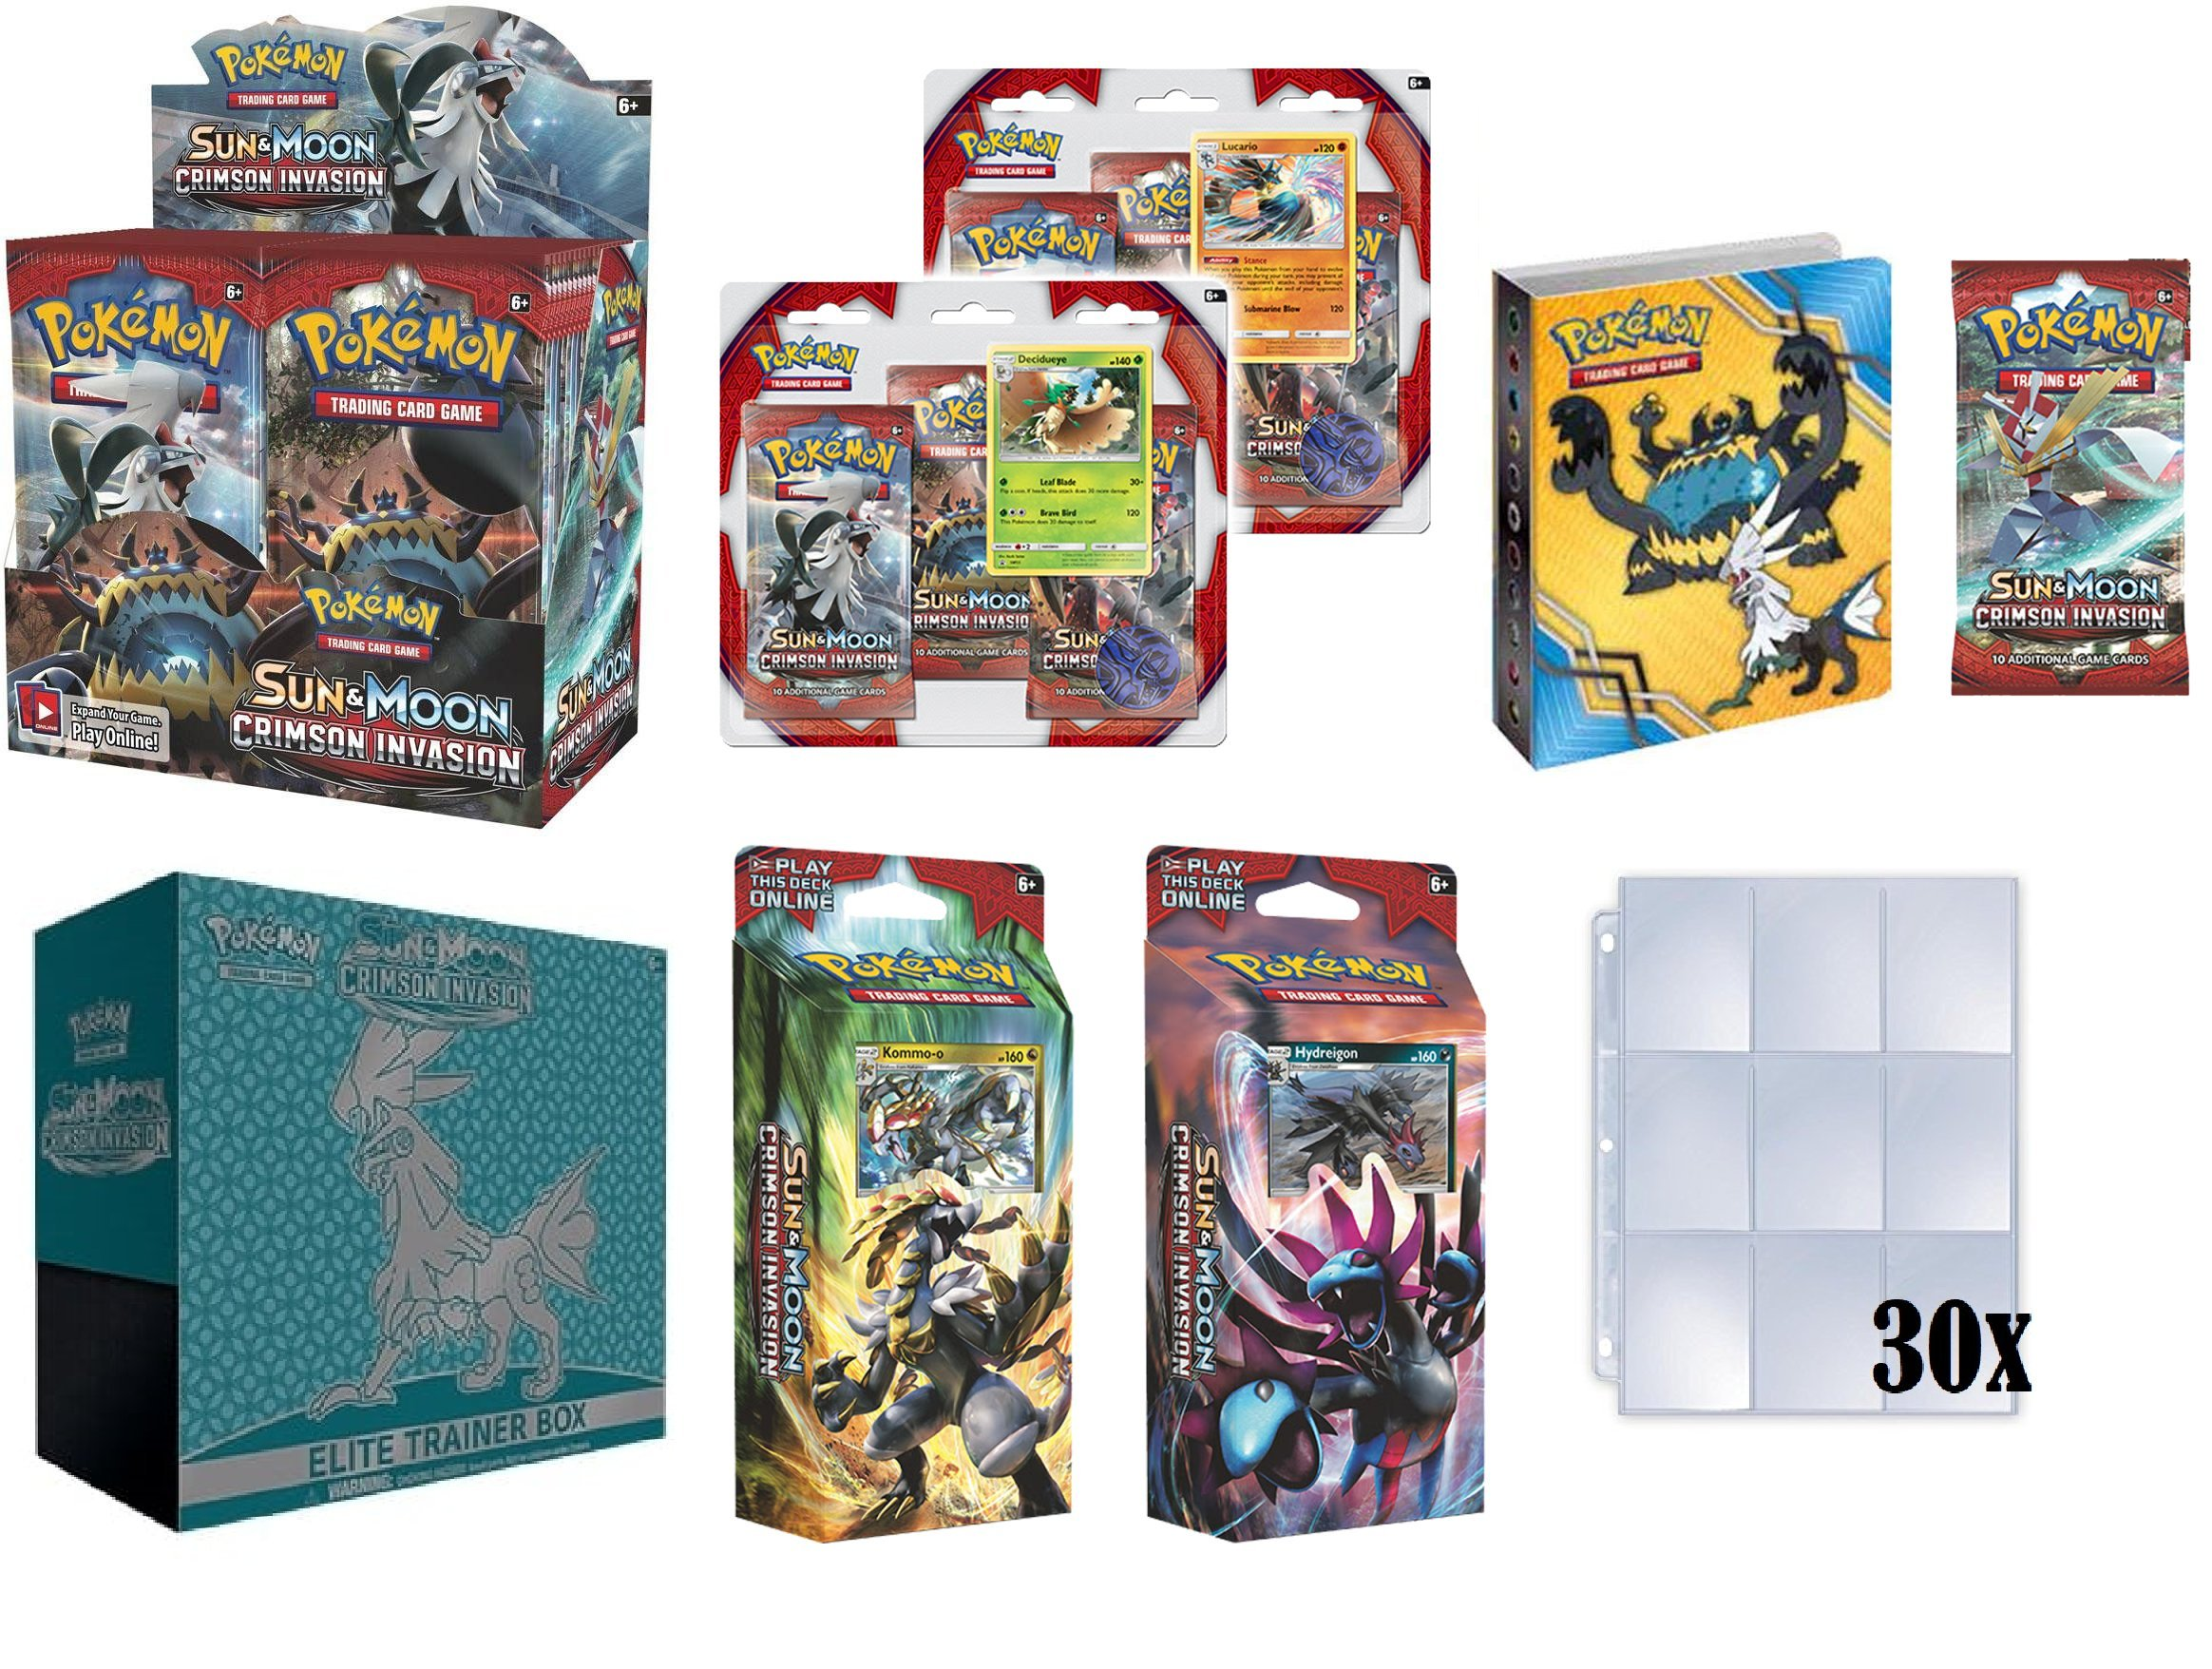 Pokemon TCG: Sun and Moon Crimson Invasion Ultimate Collectors Set Plus Bonus 30x9 Card Holder Pages (Booster Box, Elite Trainer, Both Theme Decks, Both 3 Pack Blisters, Mini Binder and Booster Pack) by Pokémon